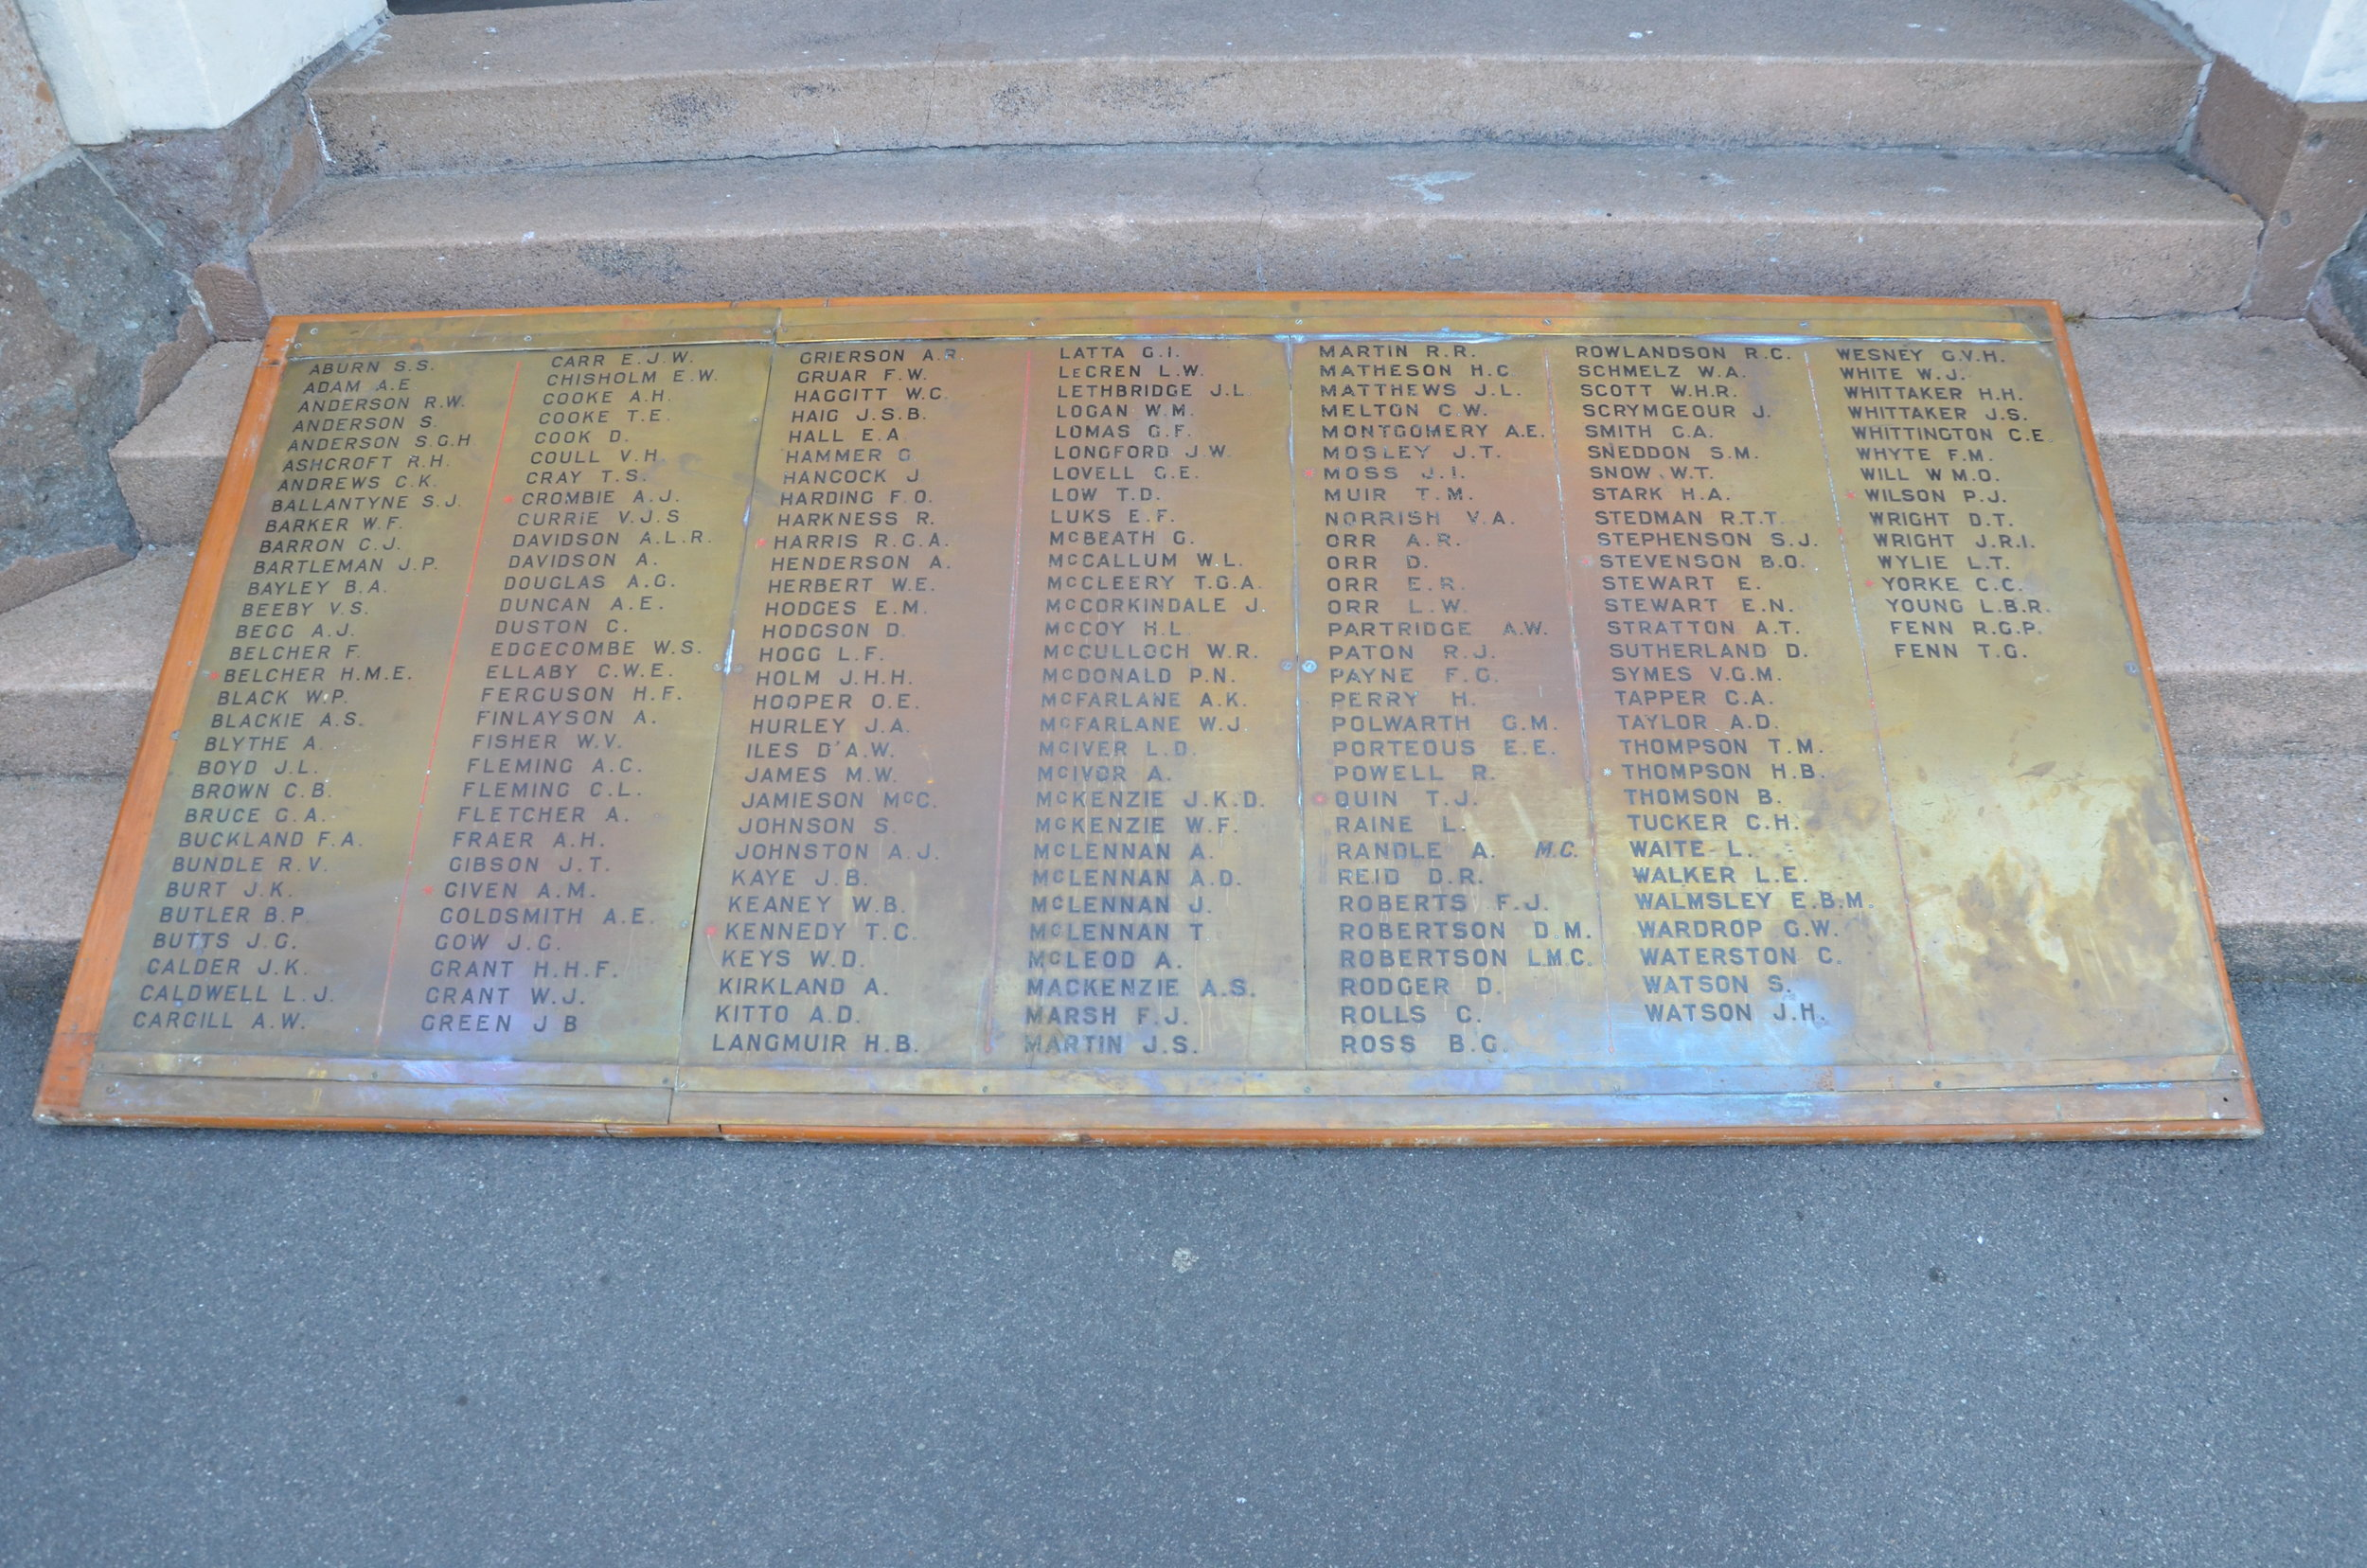 Otago Boy's High School - The Walking with an Anzac Team found the first clue in Alex's story when they visited Otago Boy's High School and discovered that there were missing brass panels. After some significant searching of the school the history teachers uncovered the enormous brass plaques in between walls in the school entrance.Further research on the same platforms you have used today allowed us to discover Alexander's Story.